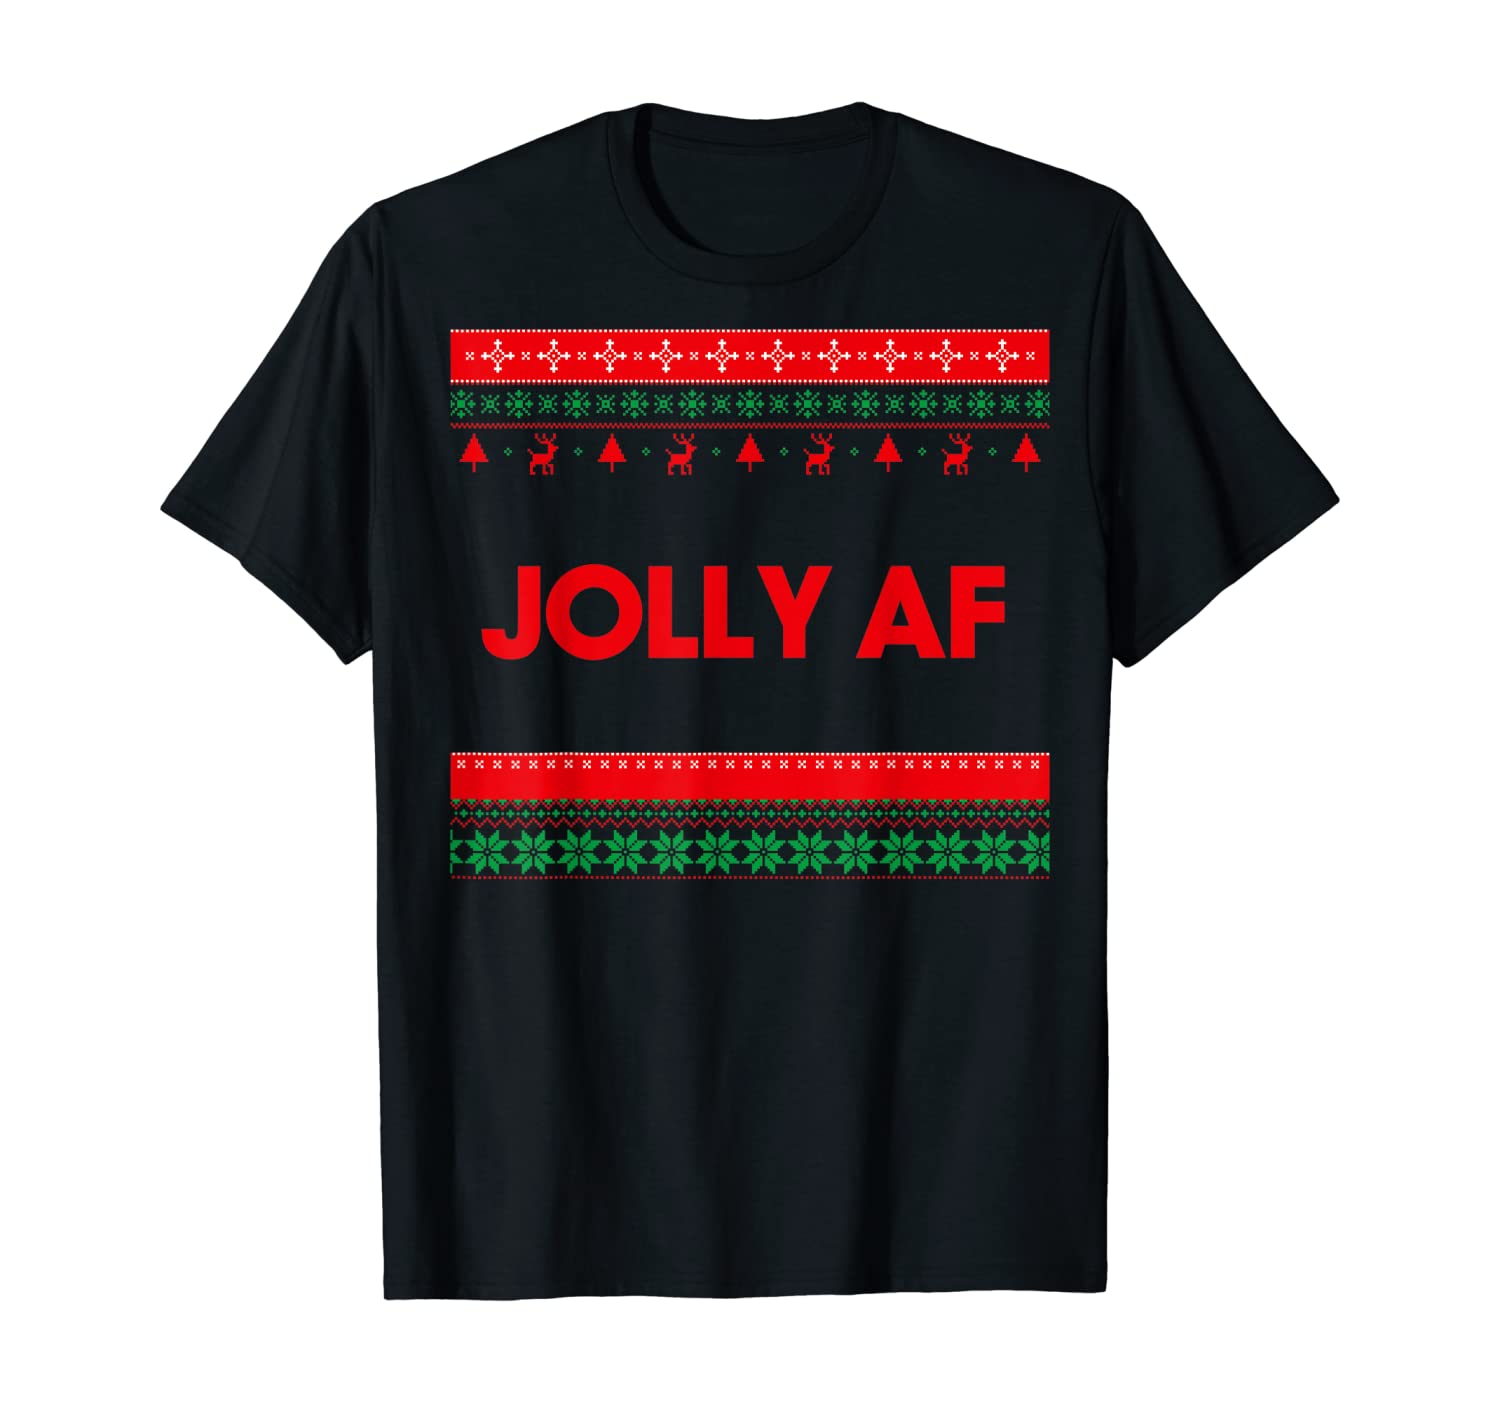 Jolly AF Ugly Sweater, Sarcastic Ugly Christmas T-Shirt